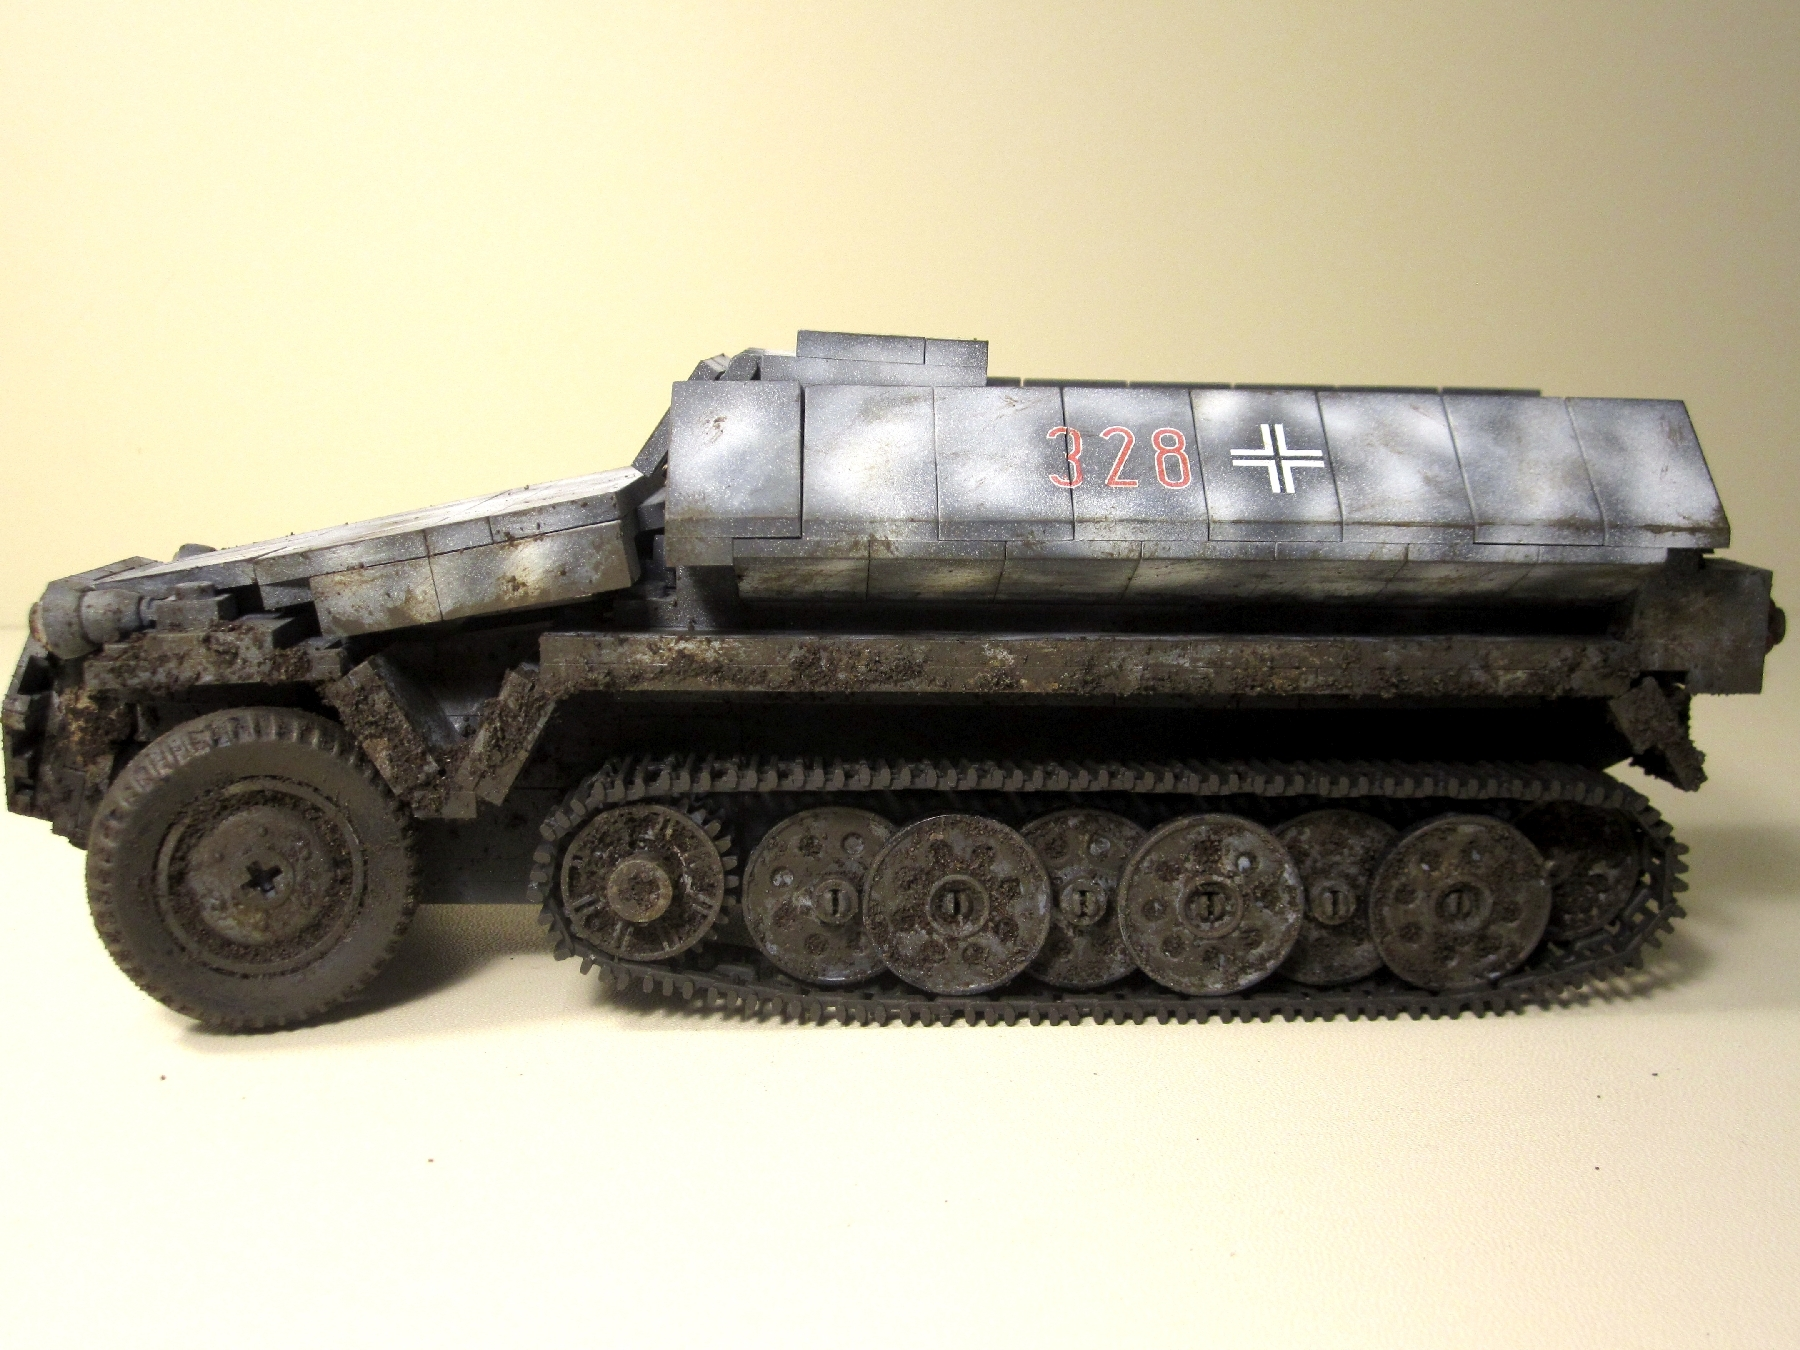 Cobi_2472_SdKfz_251_Wintertarnung_www.super-bricks.de_camouflage_paint_Small_Army_Tarnung_14